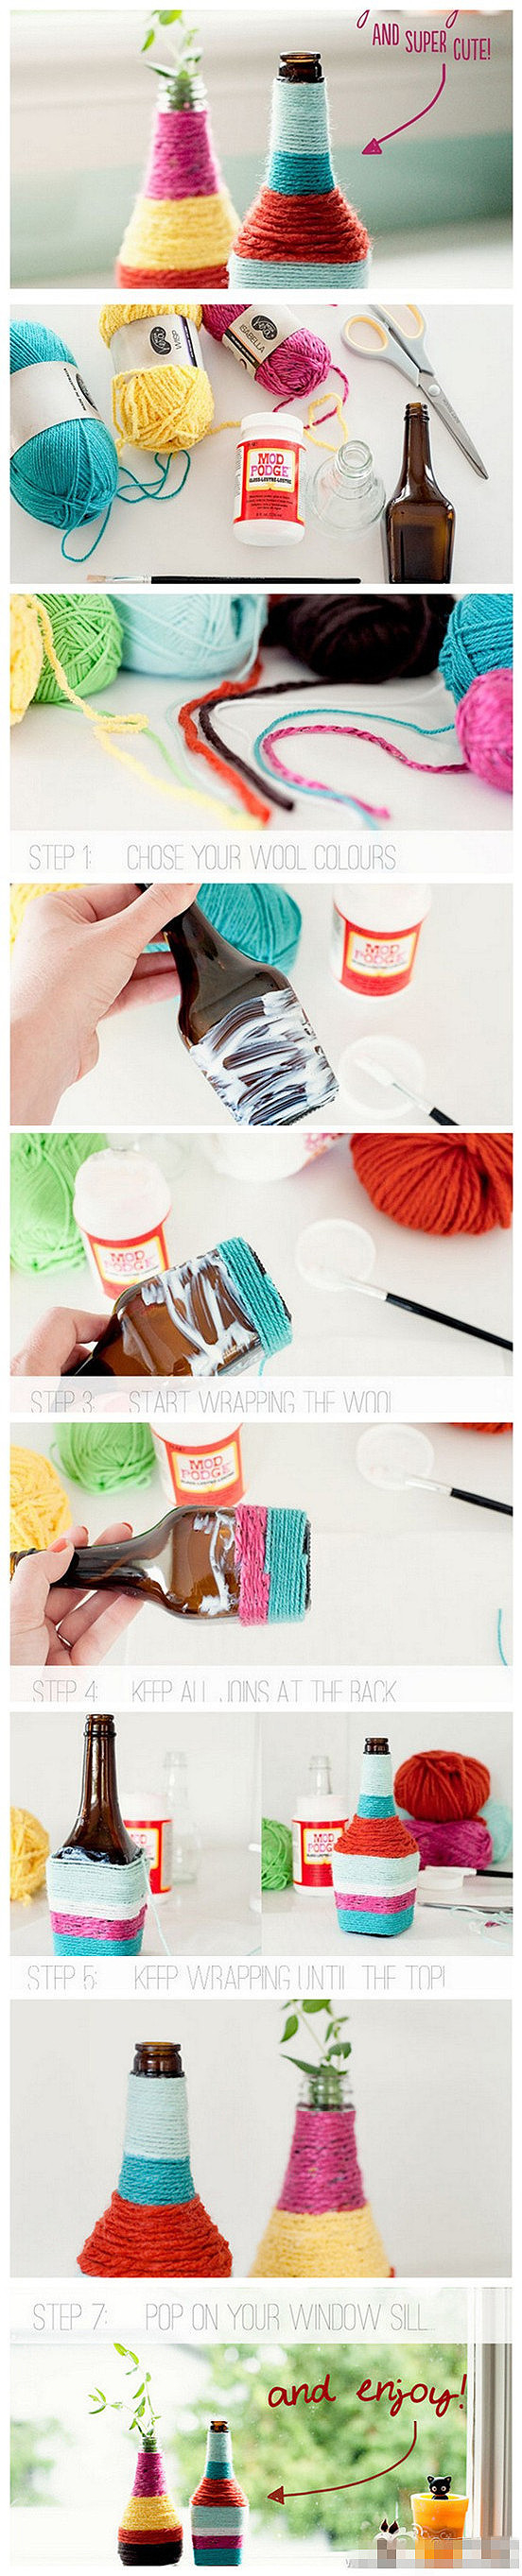 cute diy tumblr - photo #49